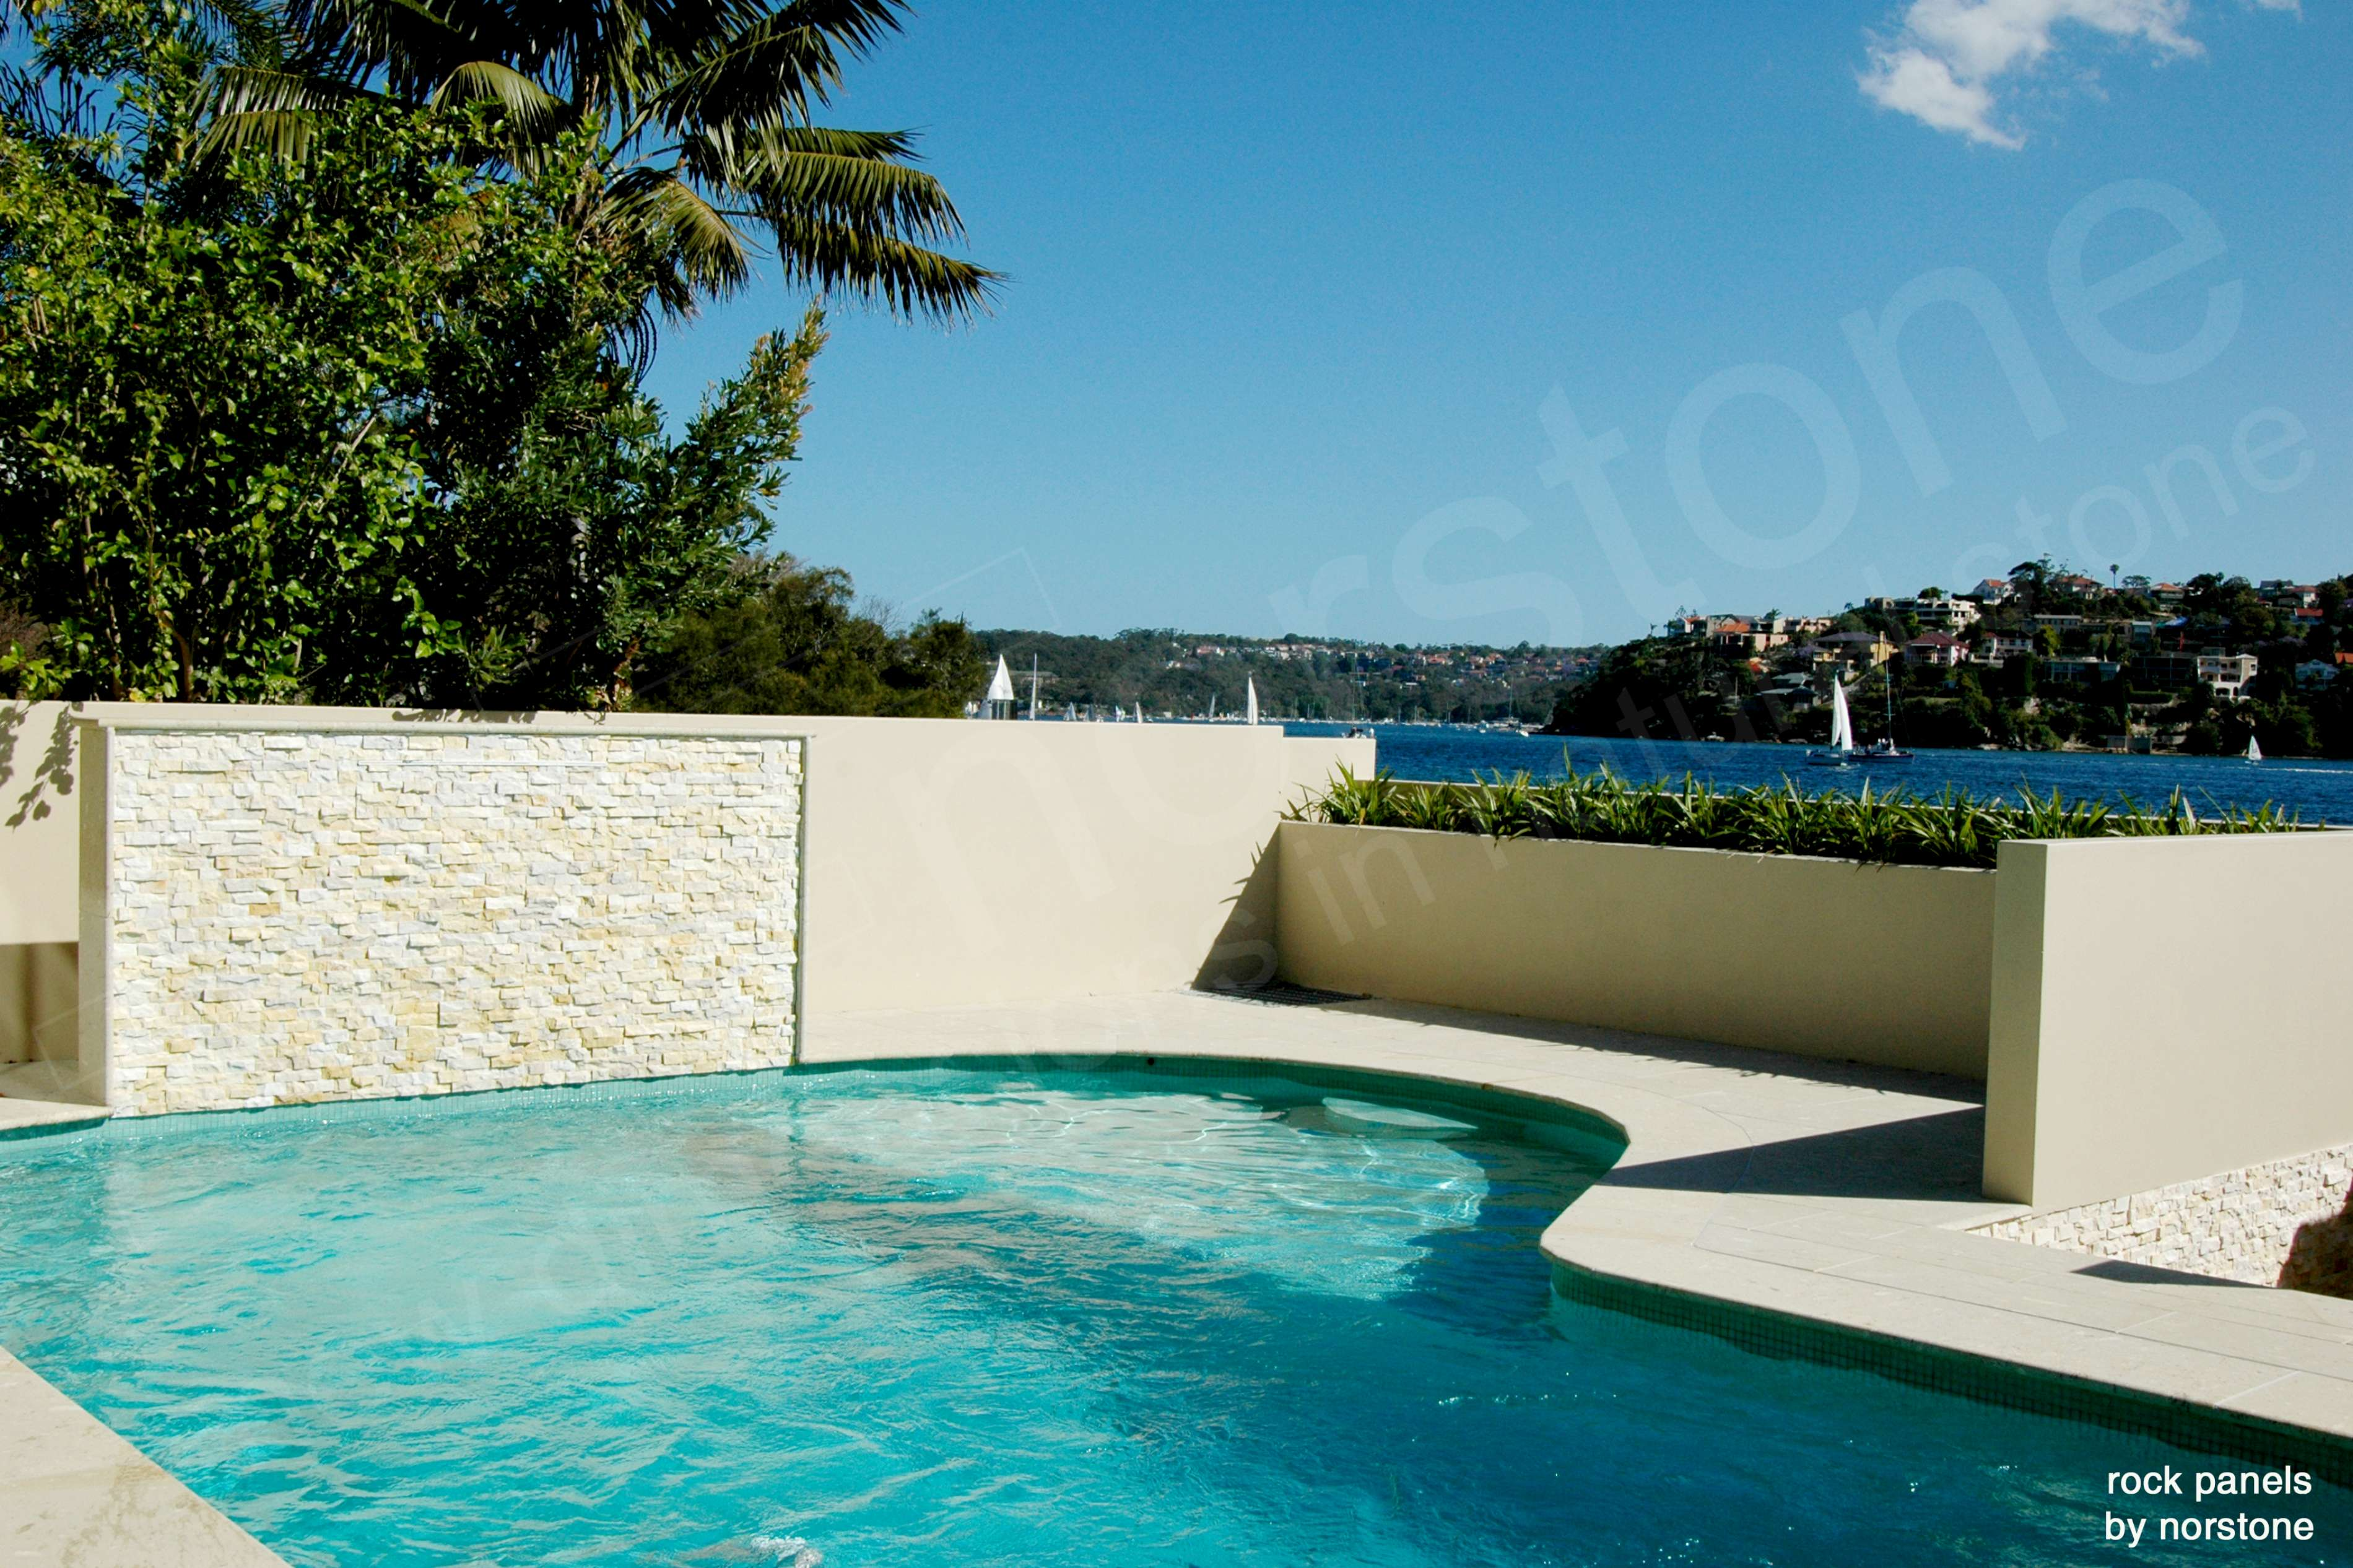 Home on the Coast of Australia featuring Norstone Ivory Rock Panels on a pool feature wall and sea wall